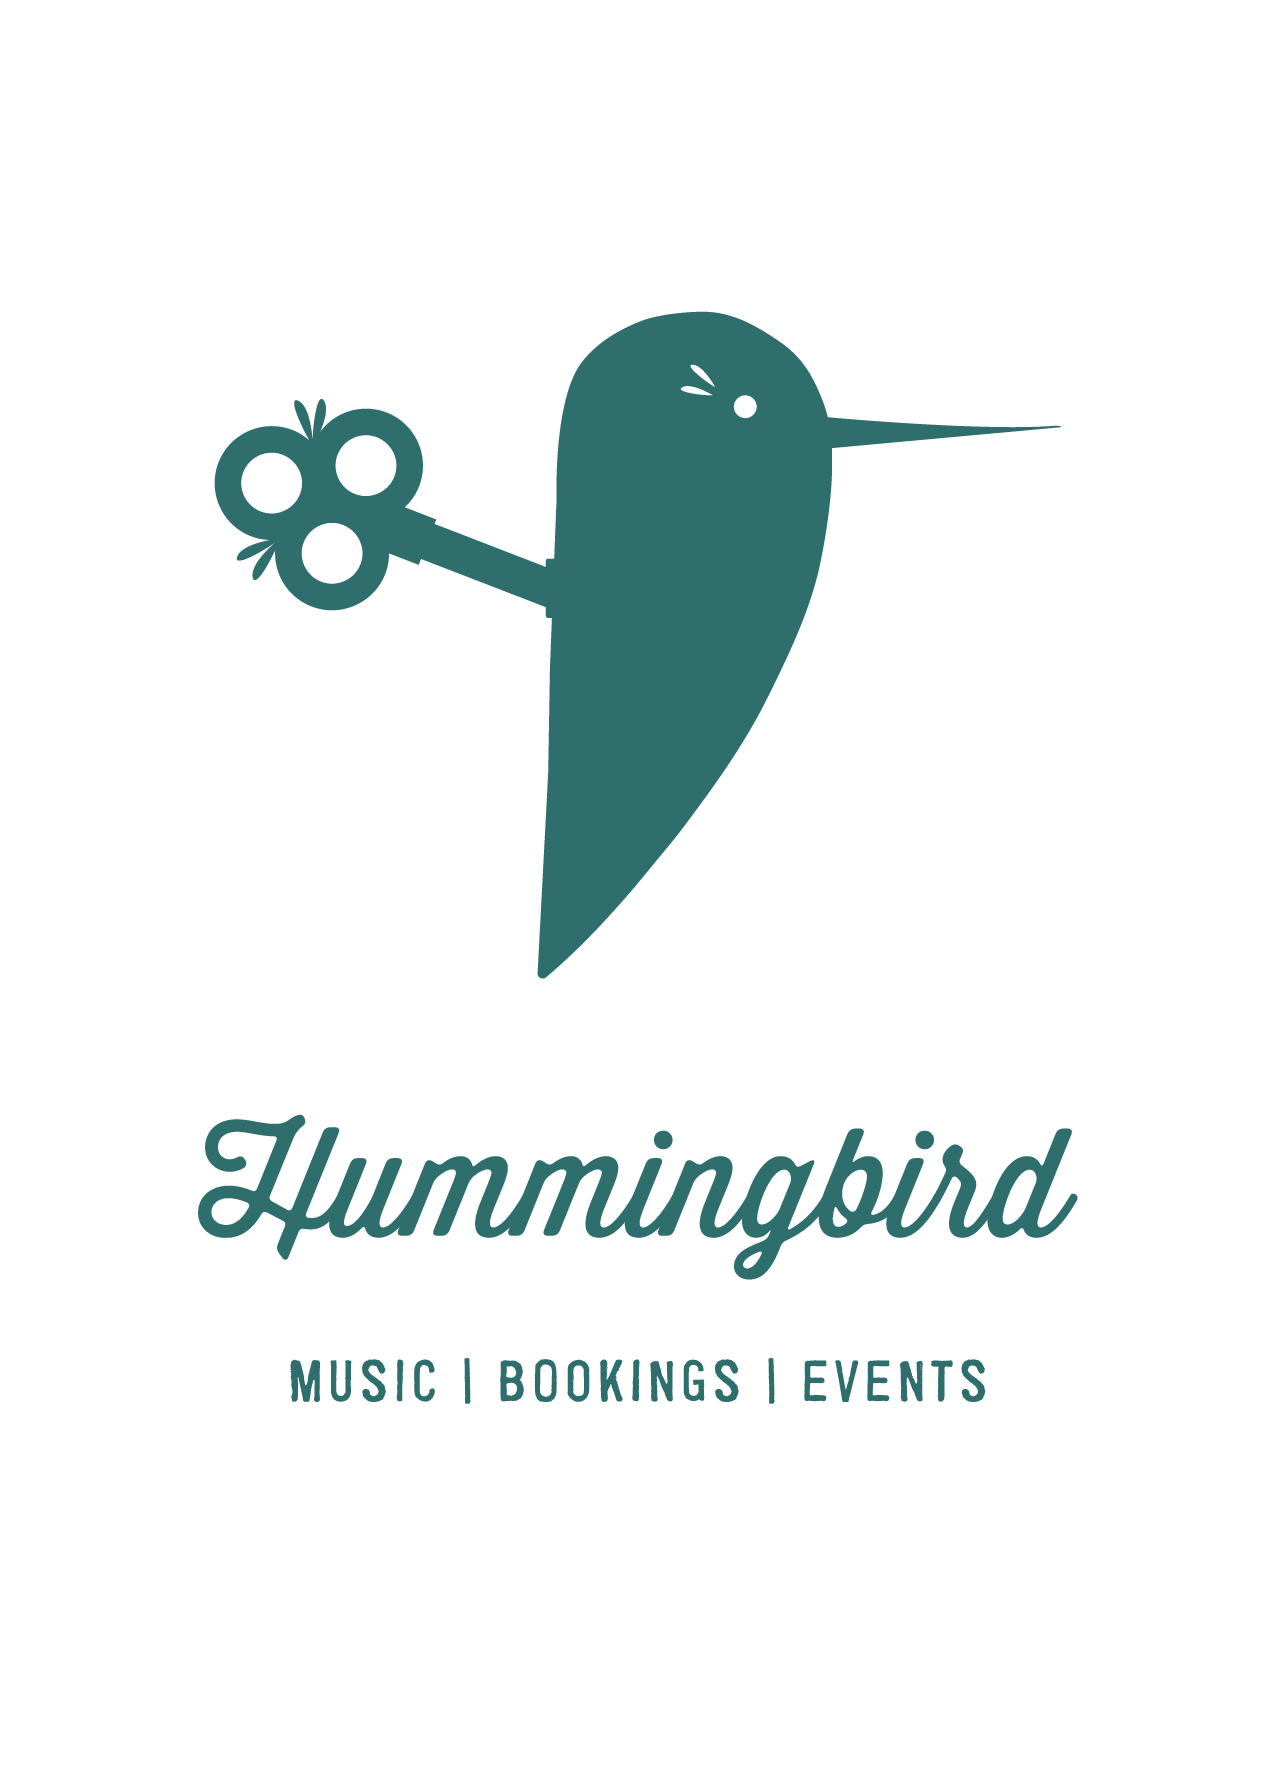 Hummingbird Music, Bookings & Events